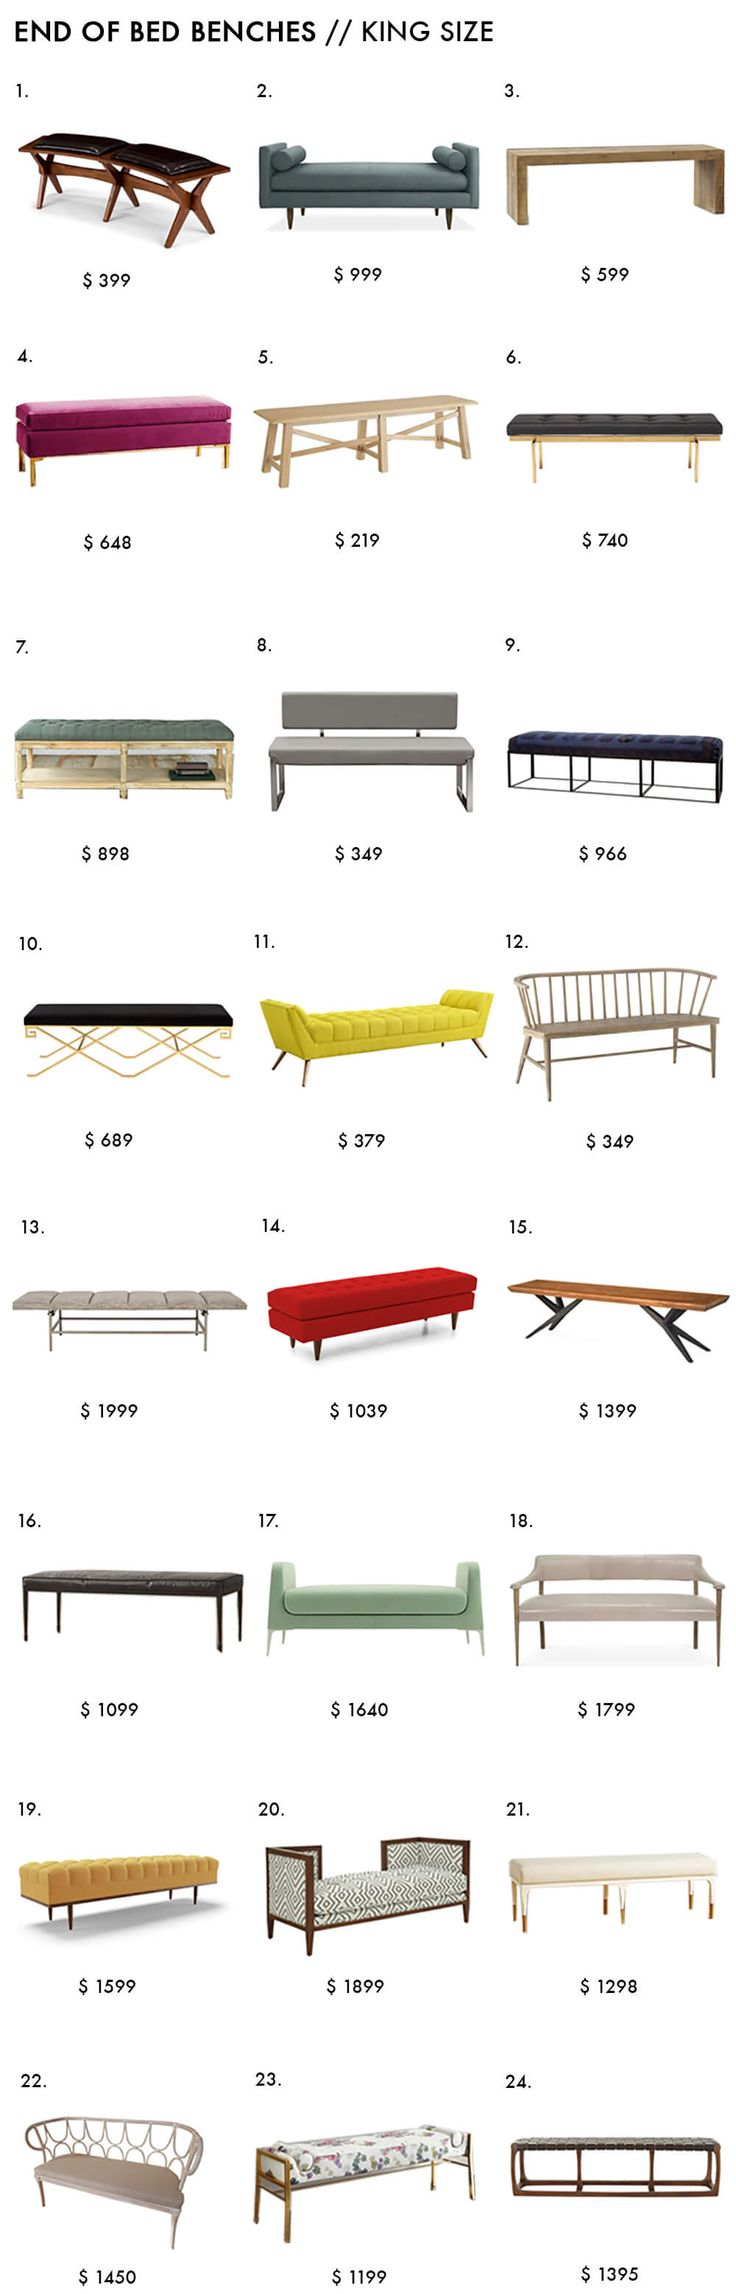 End of Bed Benches (Emily Henderson)